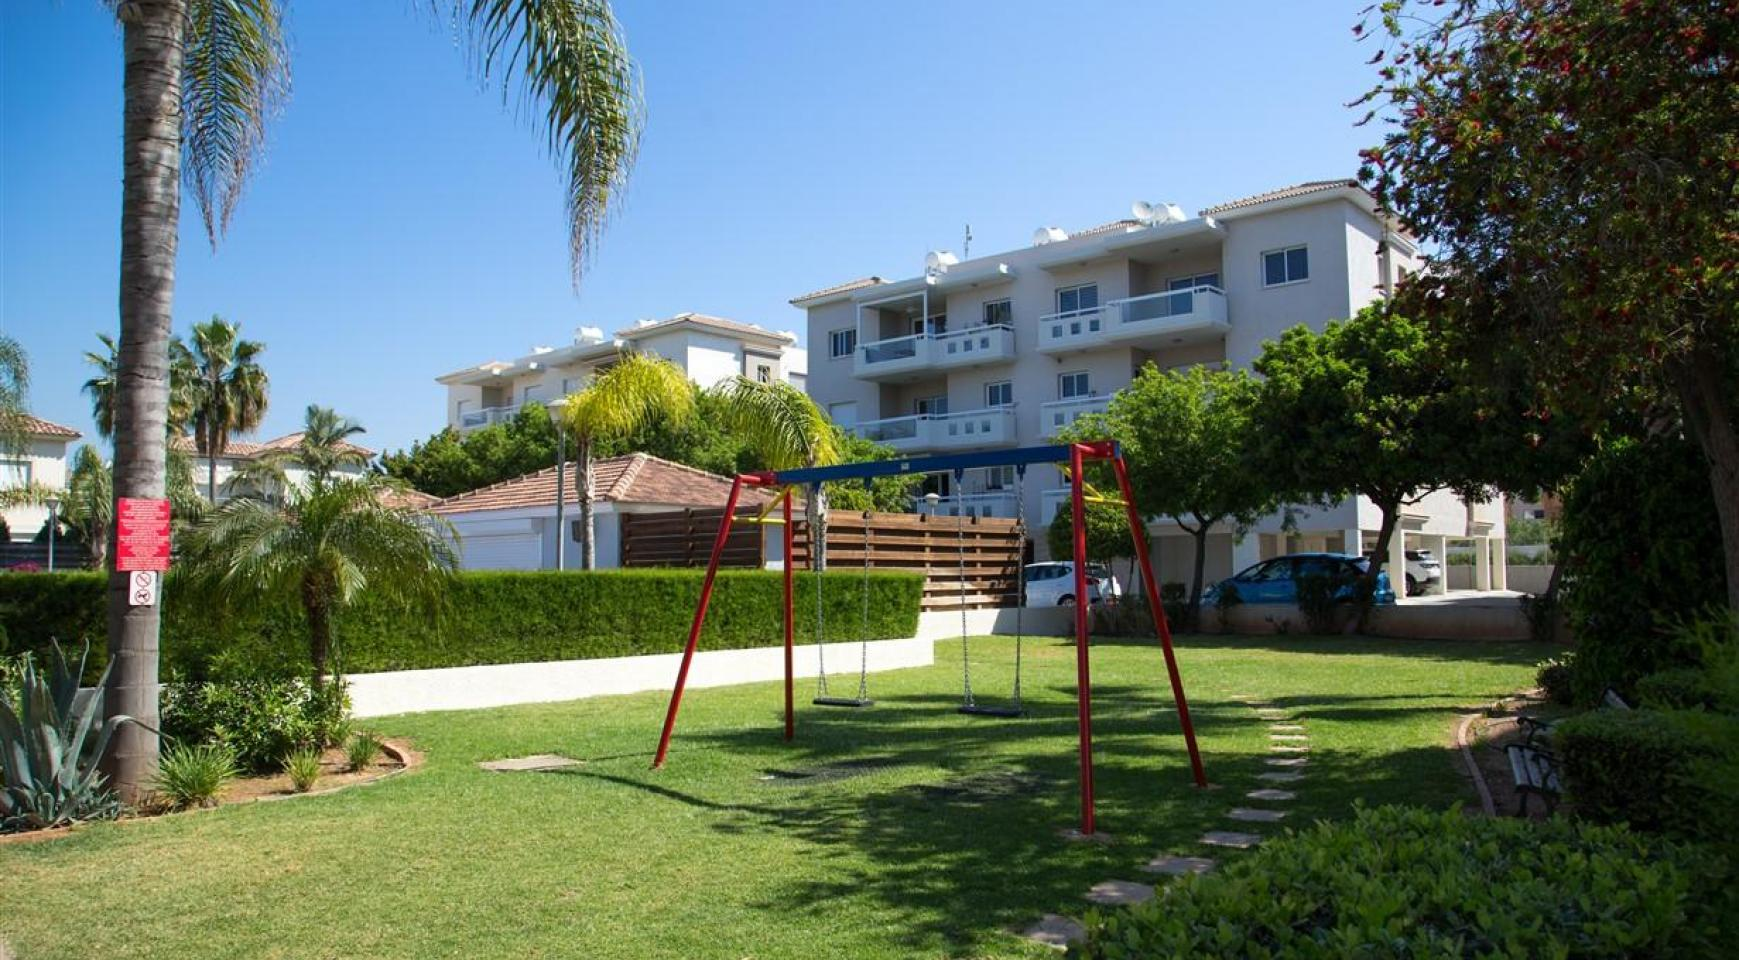 2 Bedroom Apartment Mesogios Iris 304 in the Complex near the Sea - 29